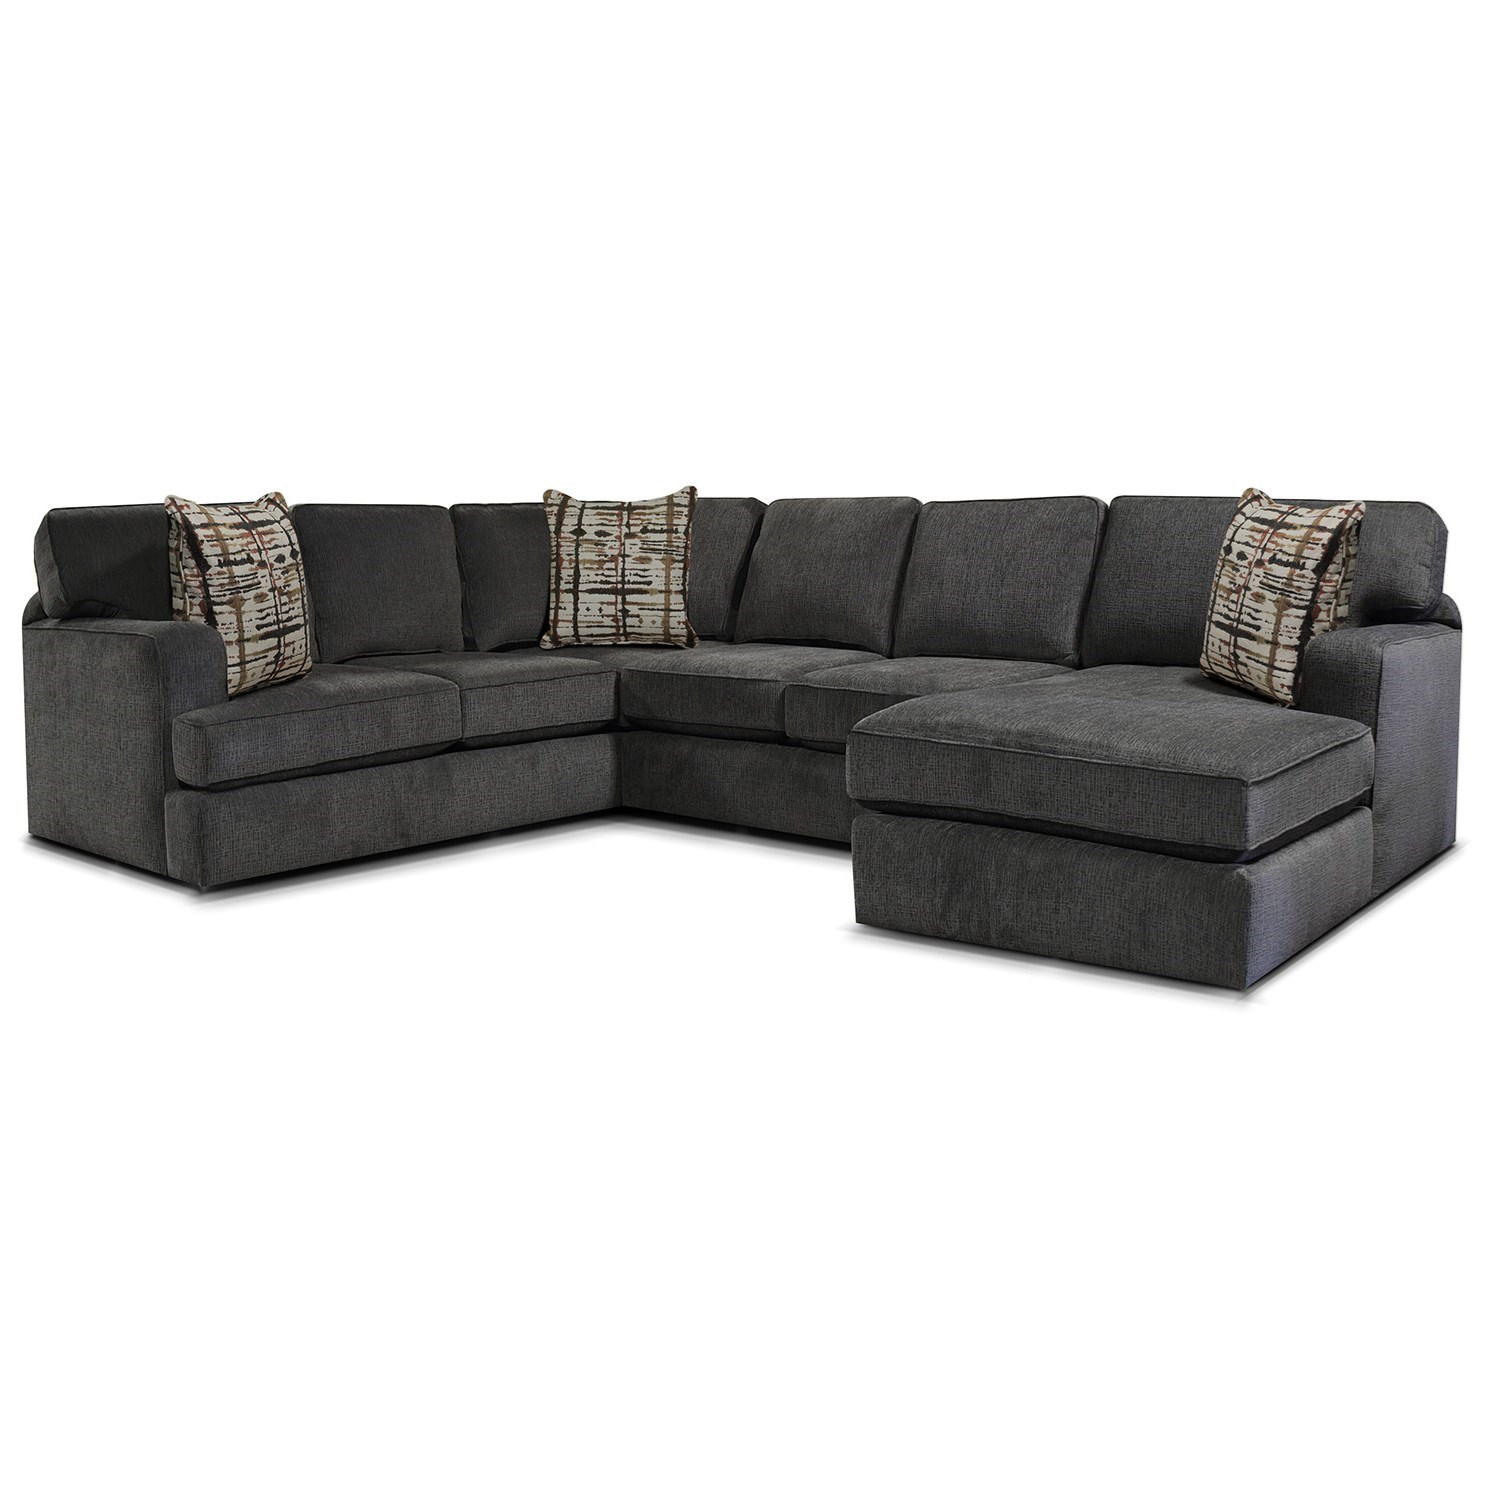 Wondrous England Rouse Casual 3 Piece Sectional Vandrie Home Unemploymentrelief Wooden Chair Designs For Living Room Unemploymentrelieforg